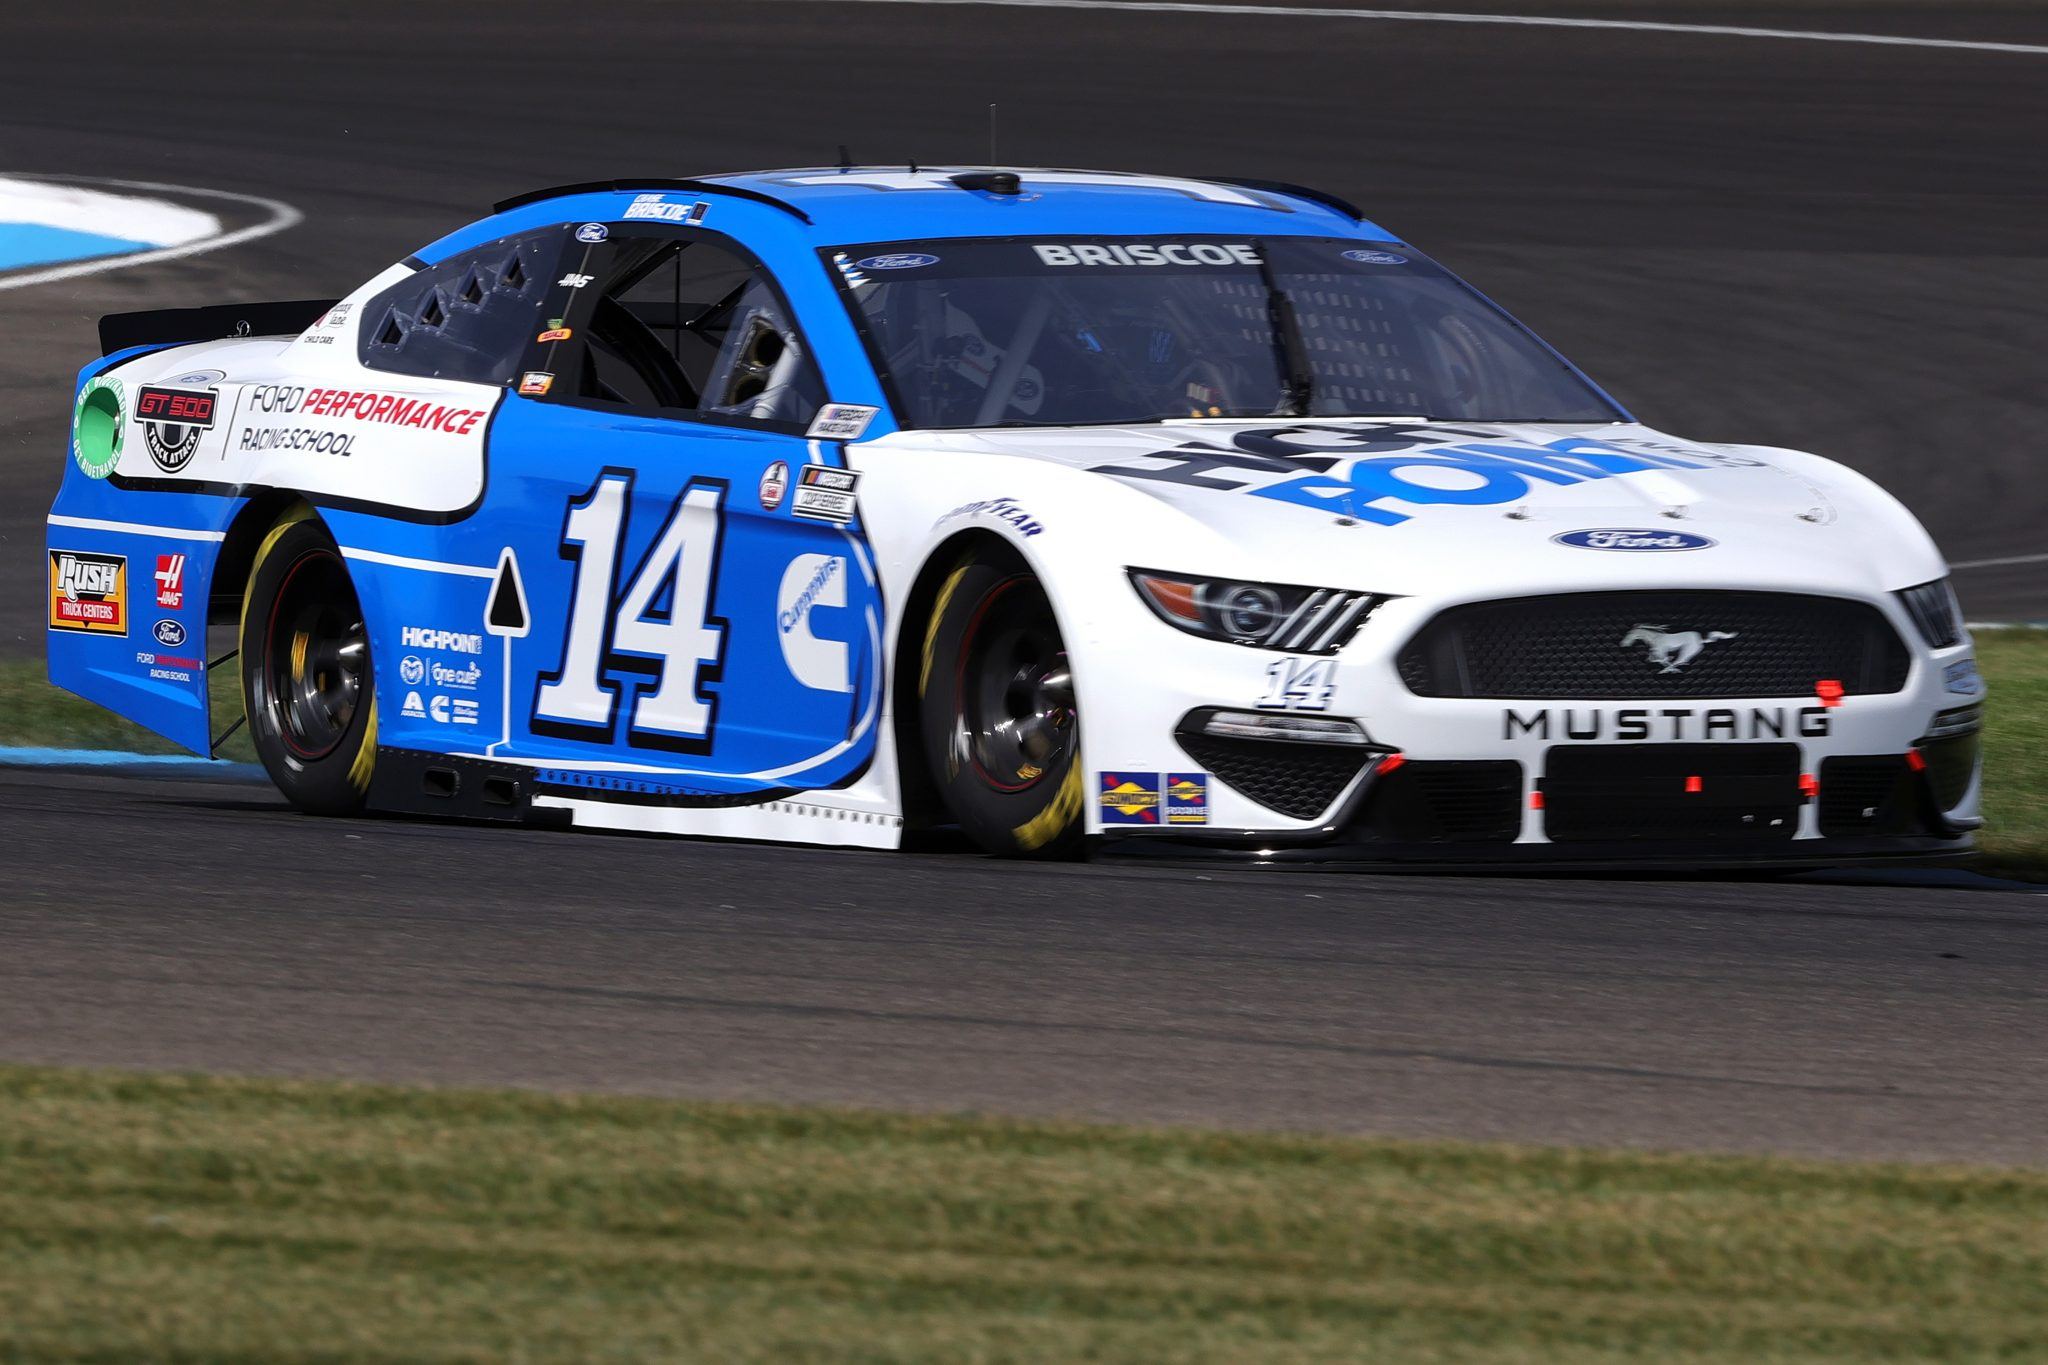 INDIANAPOLIS, INDIANA - AUGUST 14: Chase Briscoe, driver of the #14 HighPoint.com/FordPerf.RacingSchool Ford, drives during practice for the NASCAR Cup Series Verizon 200 at the Brickyard at Indianapolis Motor Speedway on August 14, 2021 in Indianapolis, Indiana. (Photo by Stacy Revere/Getty Images)   Getty Images